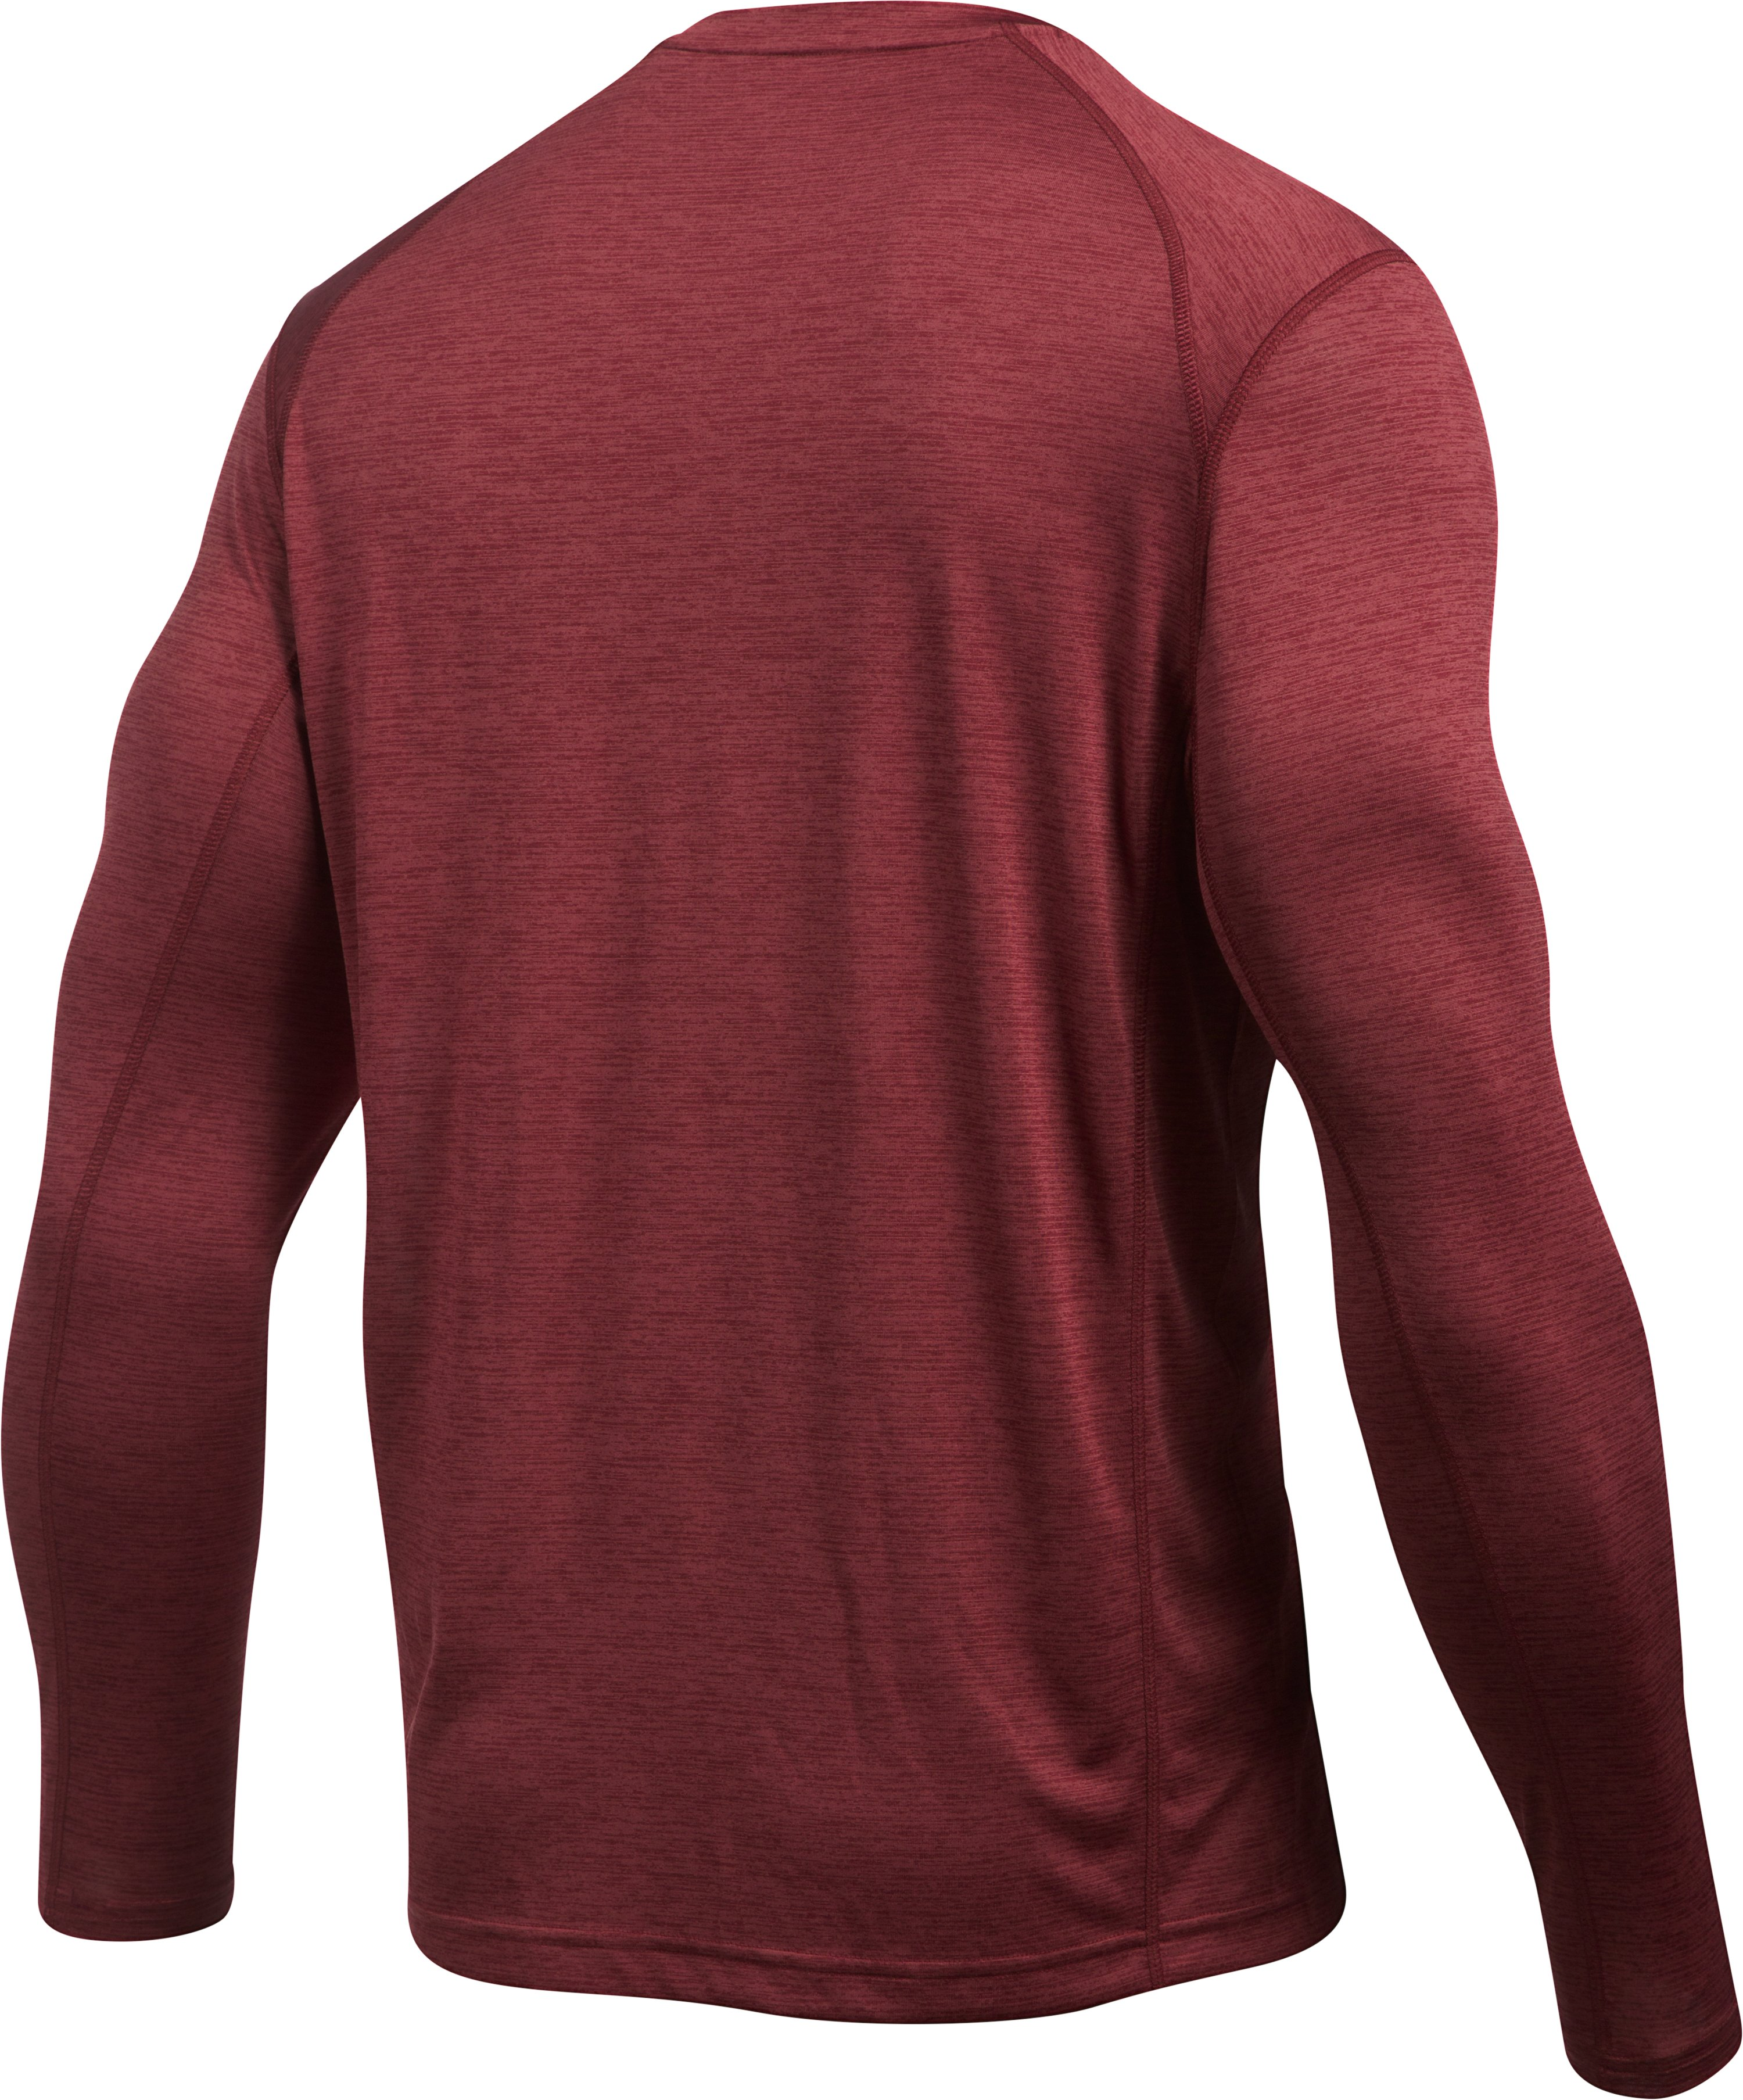 Men's South Carolina Long Sleeve Training T-Shirt, Garnet, undefined